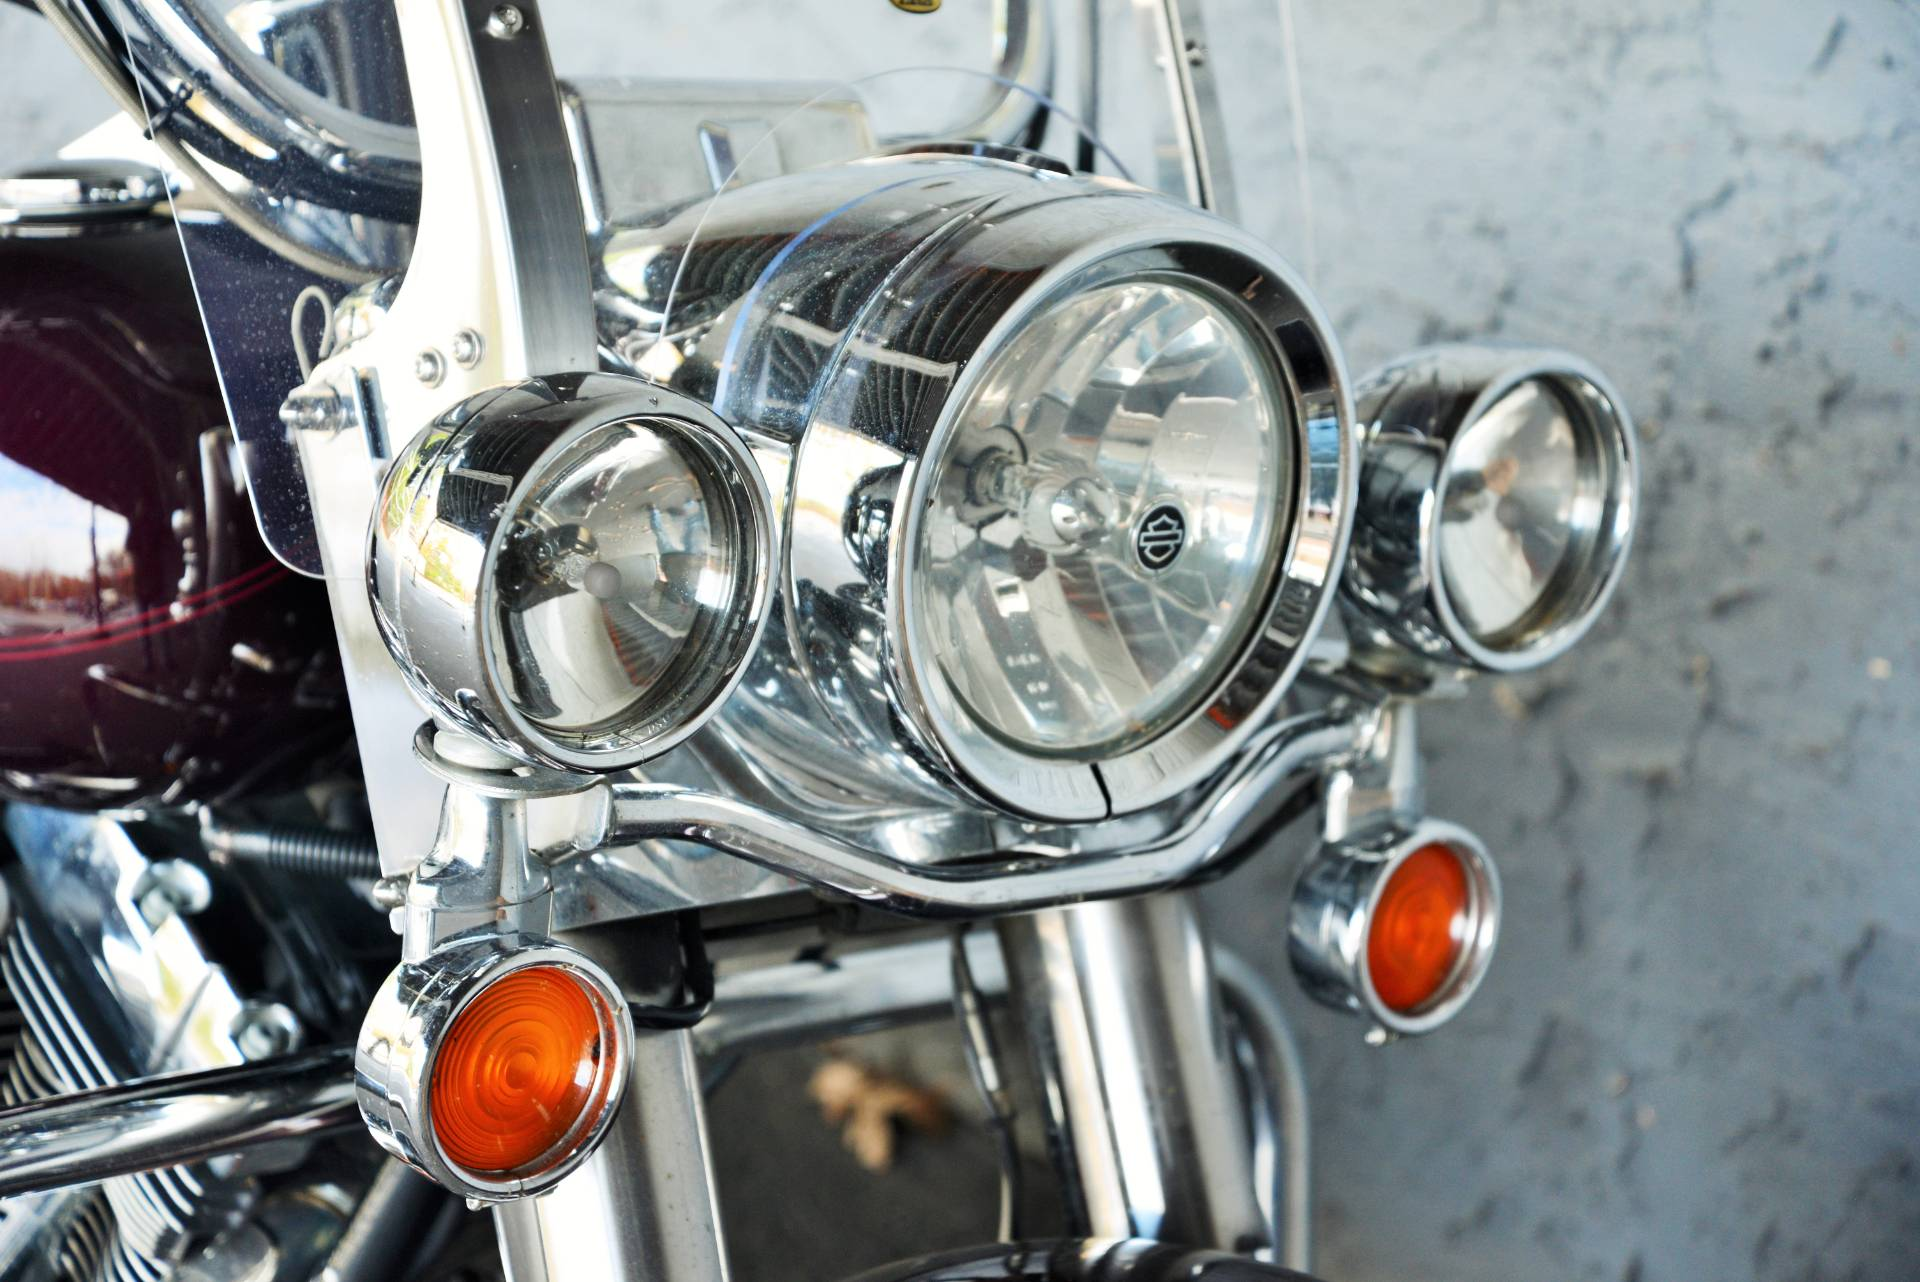 2005 Harley-Davidson ROAD KING in Lakewood, New Jersey - Photo 5